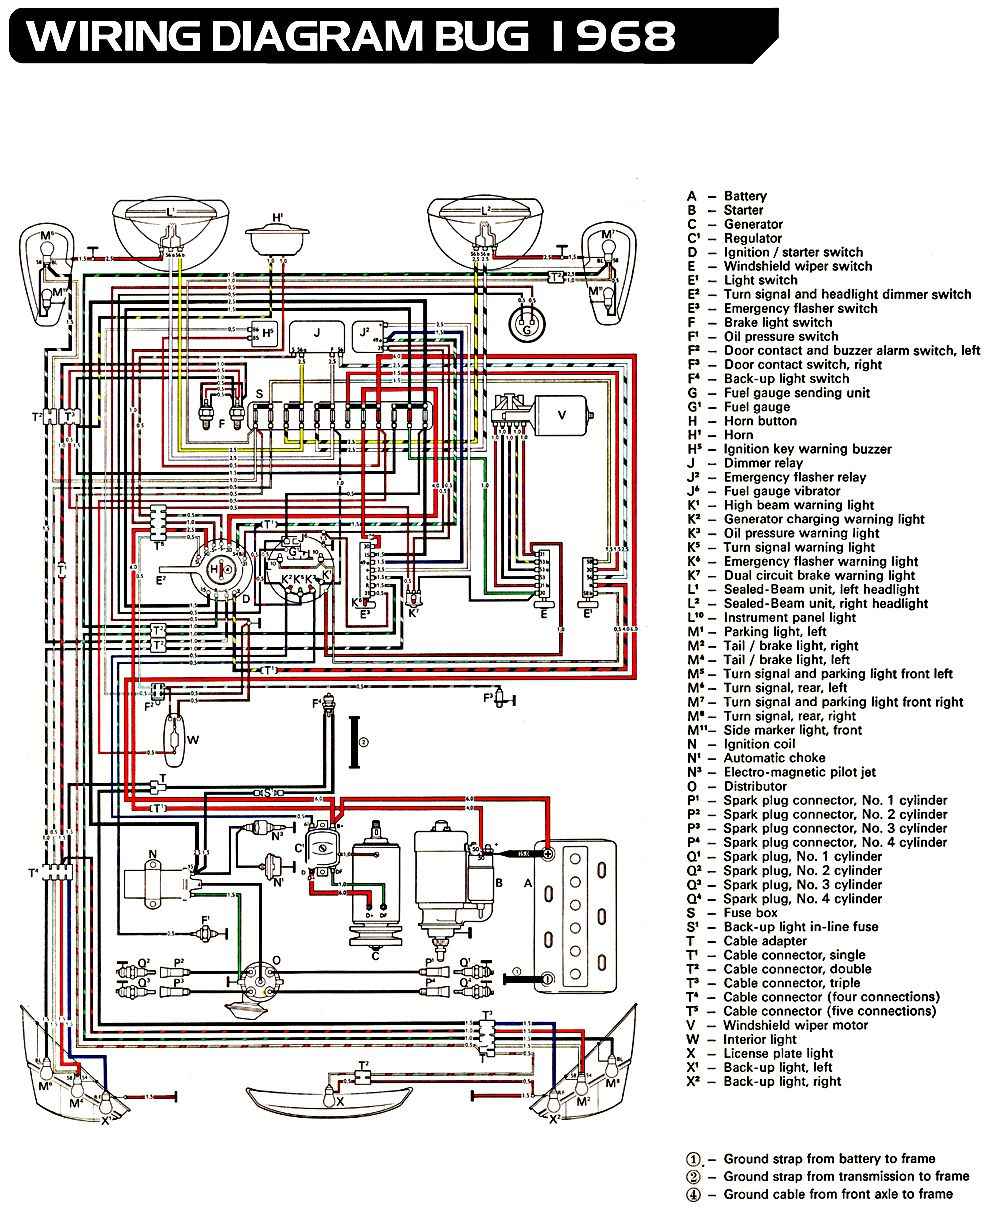 small resolution of 68 vw bug fuse diagram wiring diagram vw bug ignition wiring diagram 73 vw wiring diagram